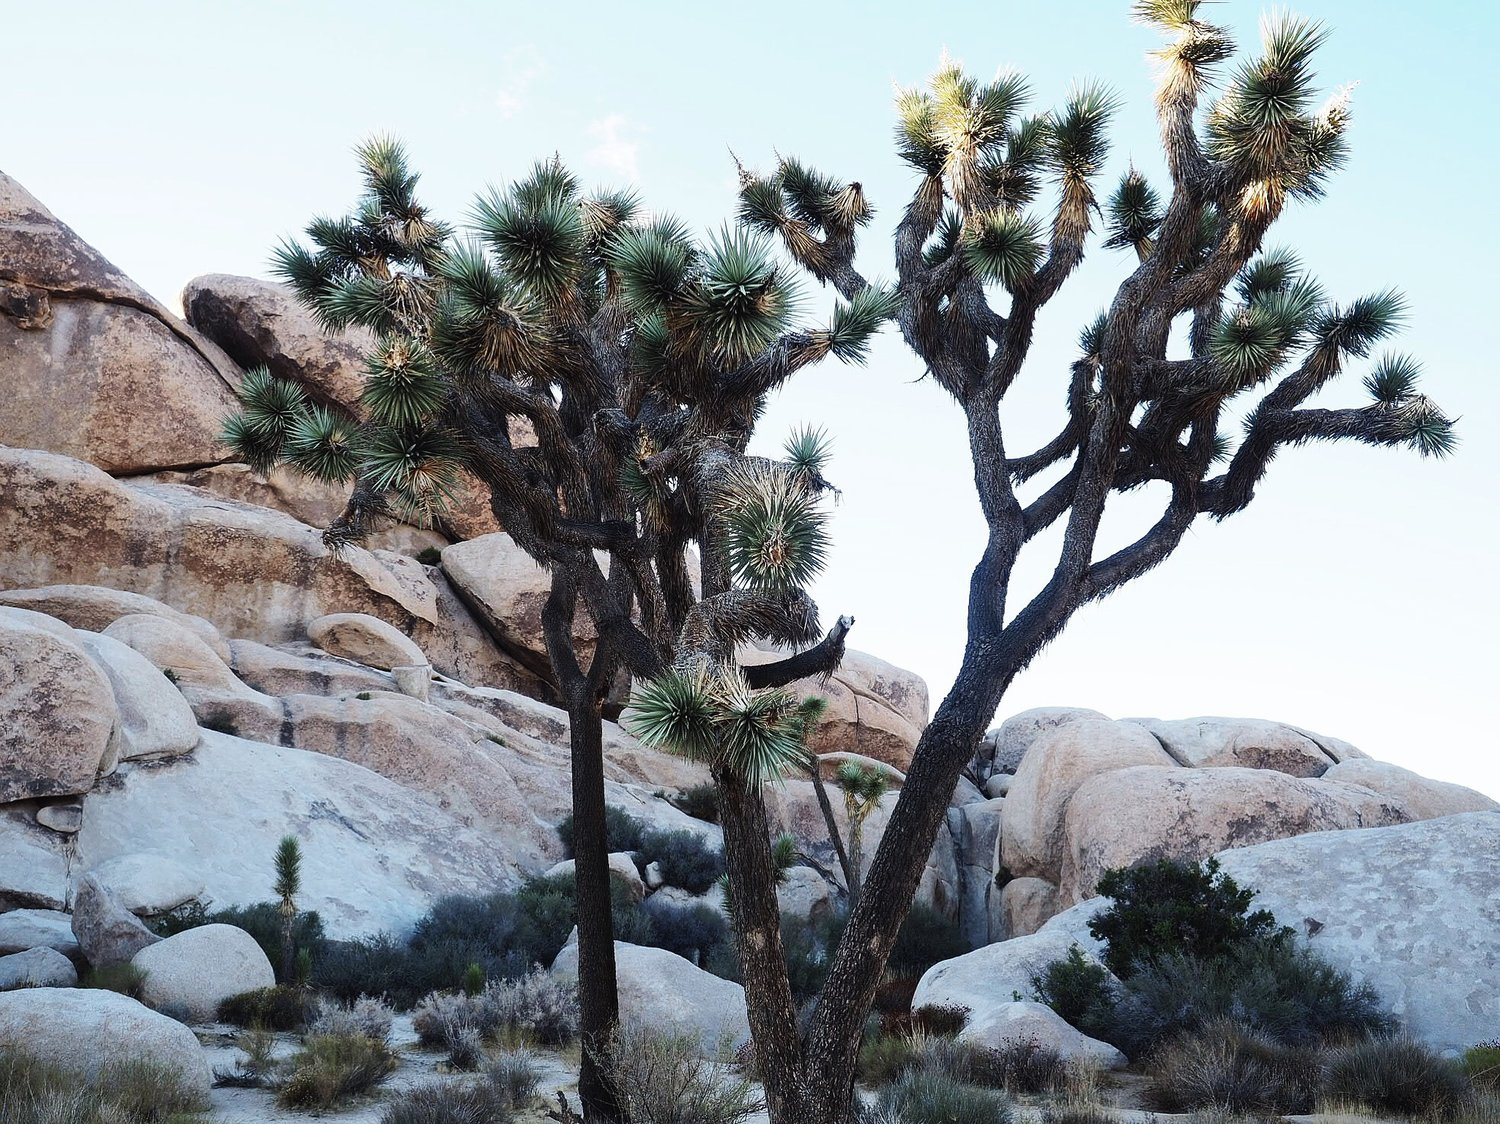 CAMPING WITHIN THEJOSHUA TREE NATIONAL PARK -